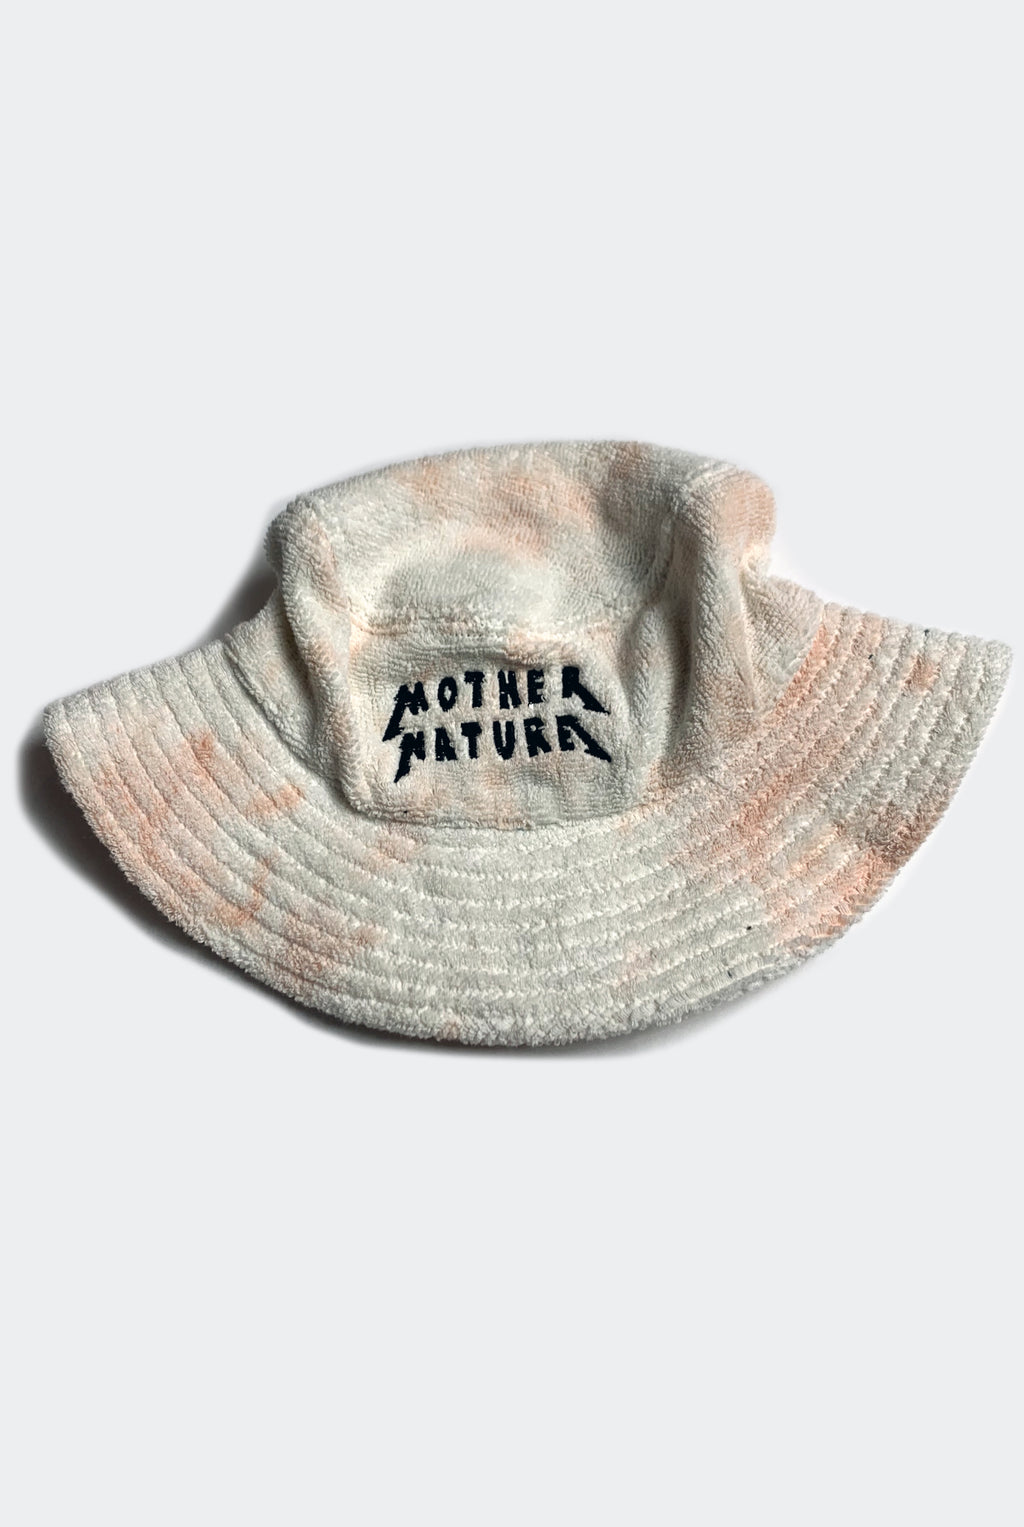 MOTHER NATURE HAT / PEACH TIE DYE